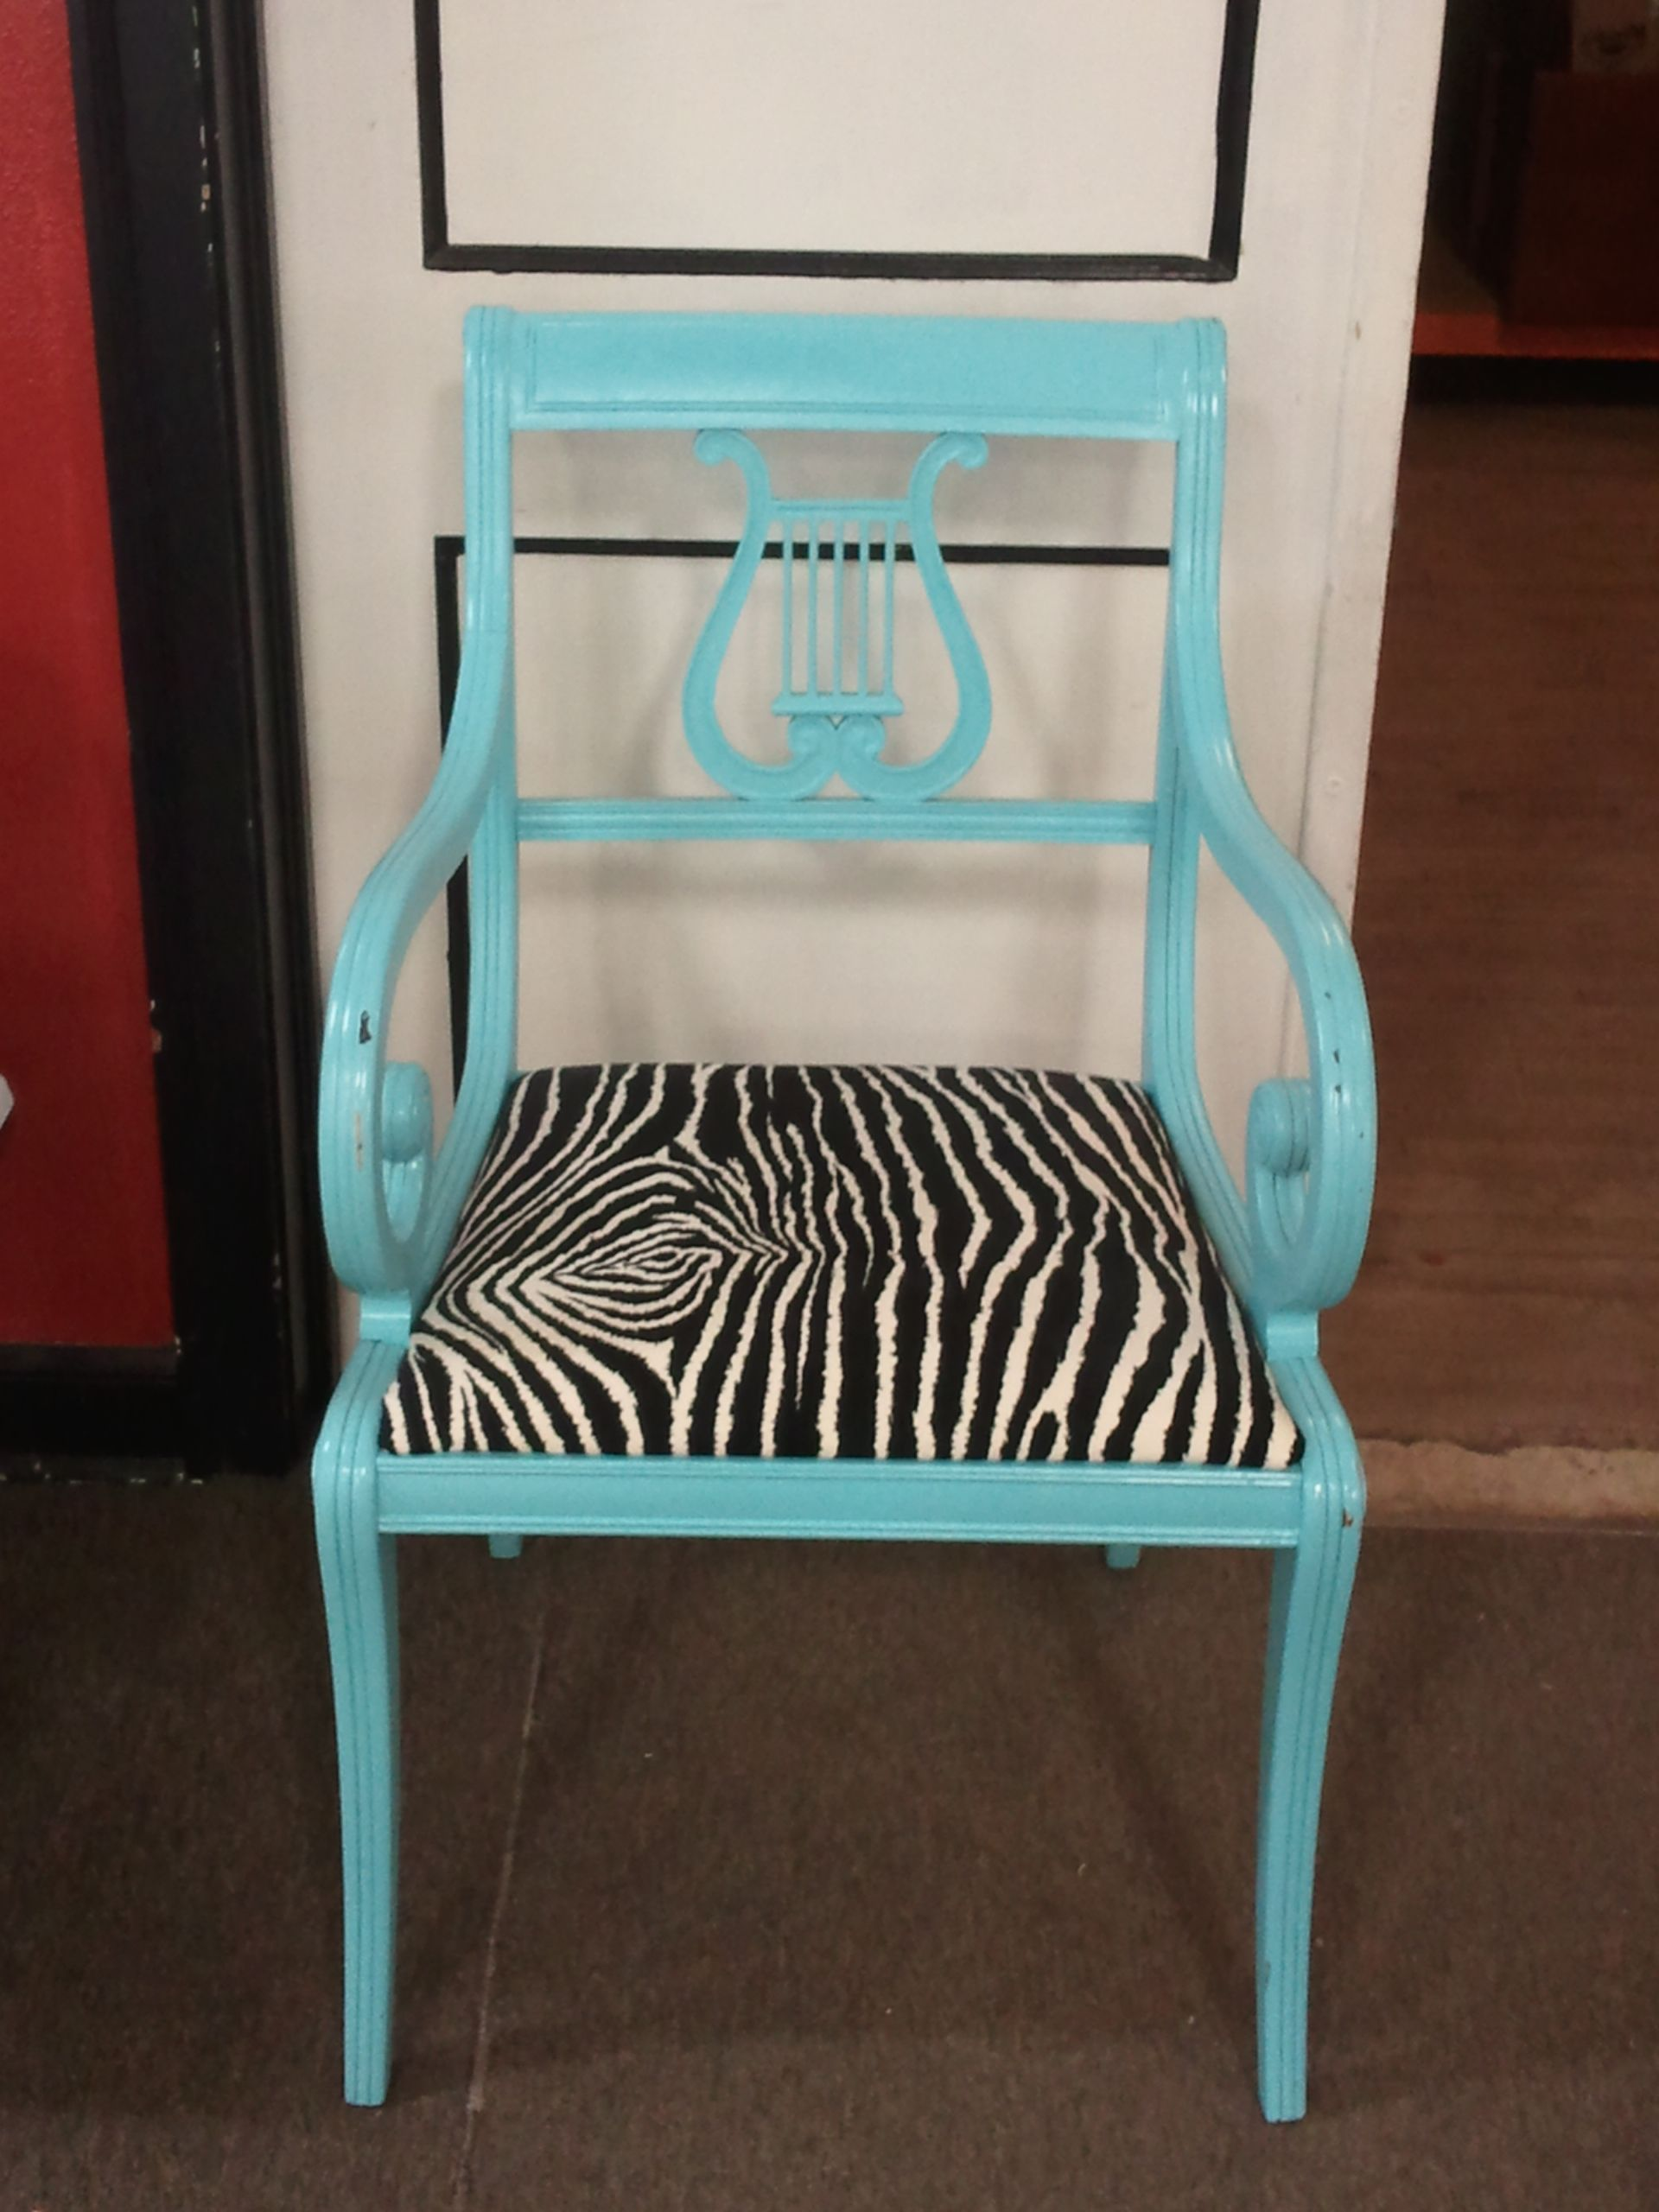 Zebra Accent Chair Antique Accent Chair Redo Teal Chair With Zebra Seat By